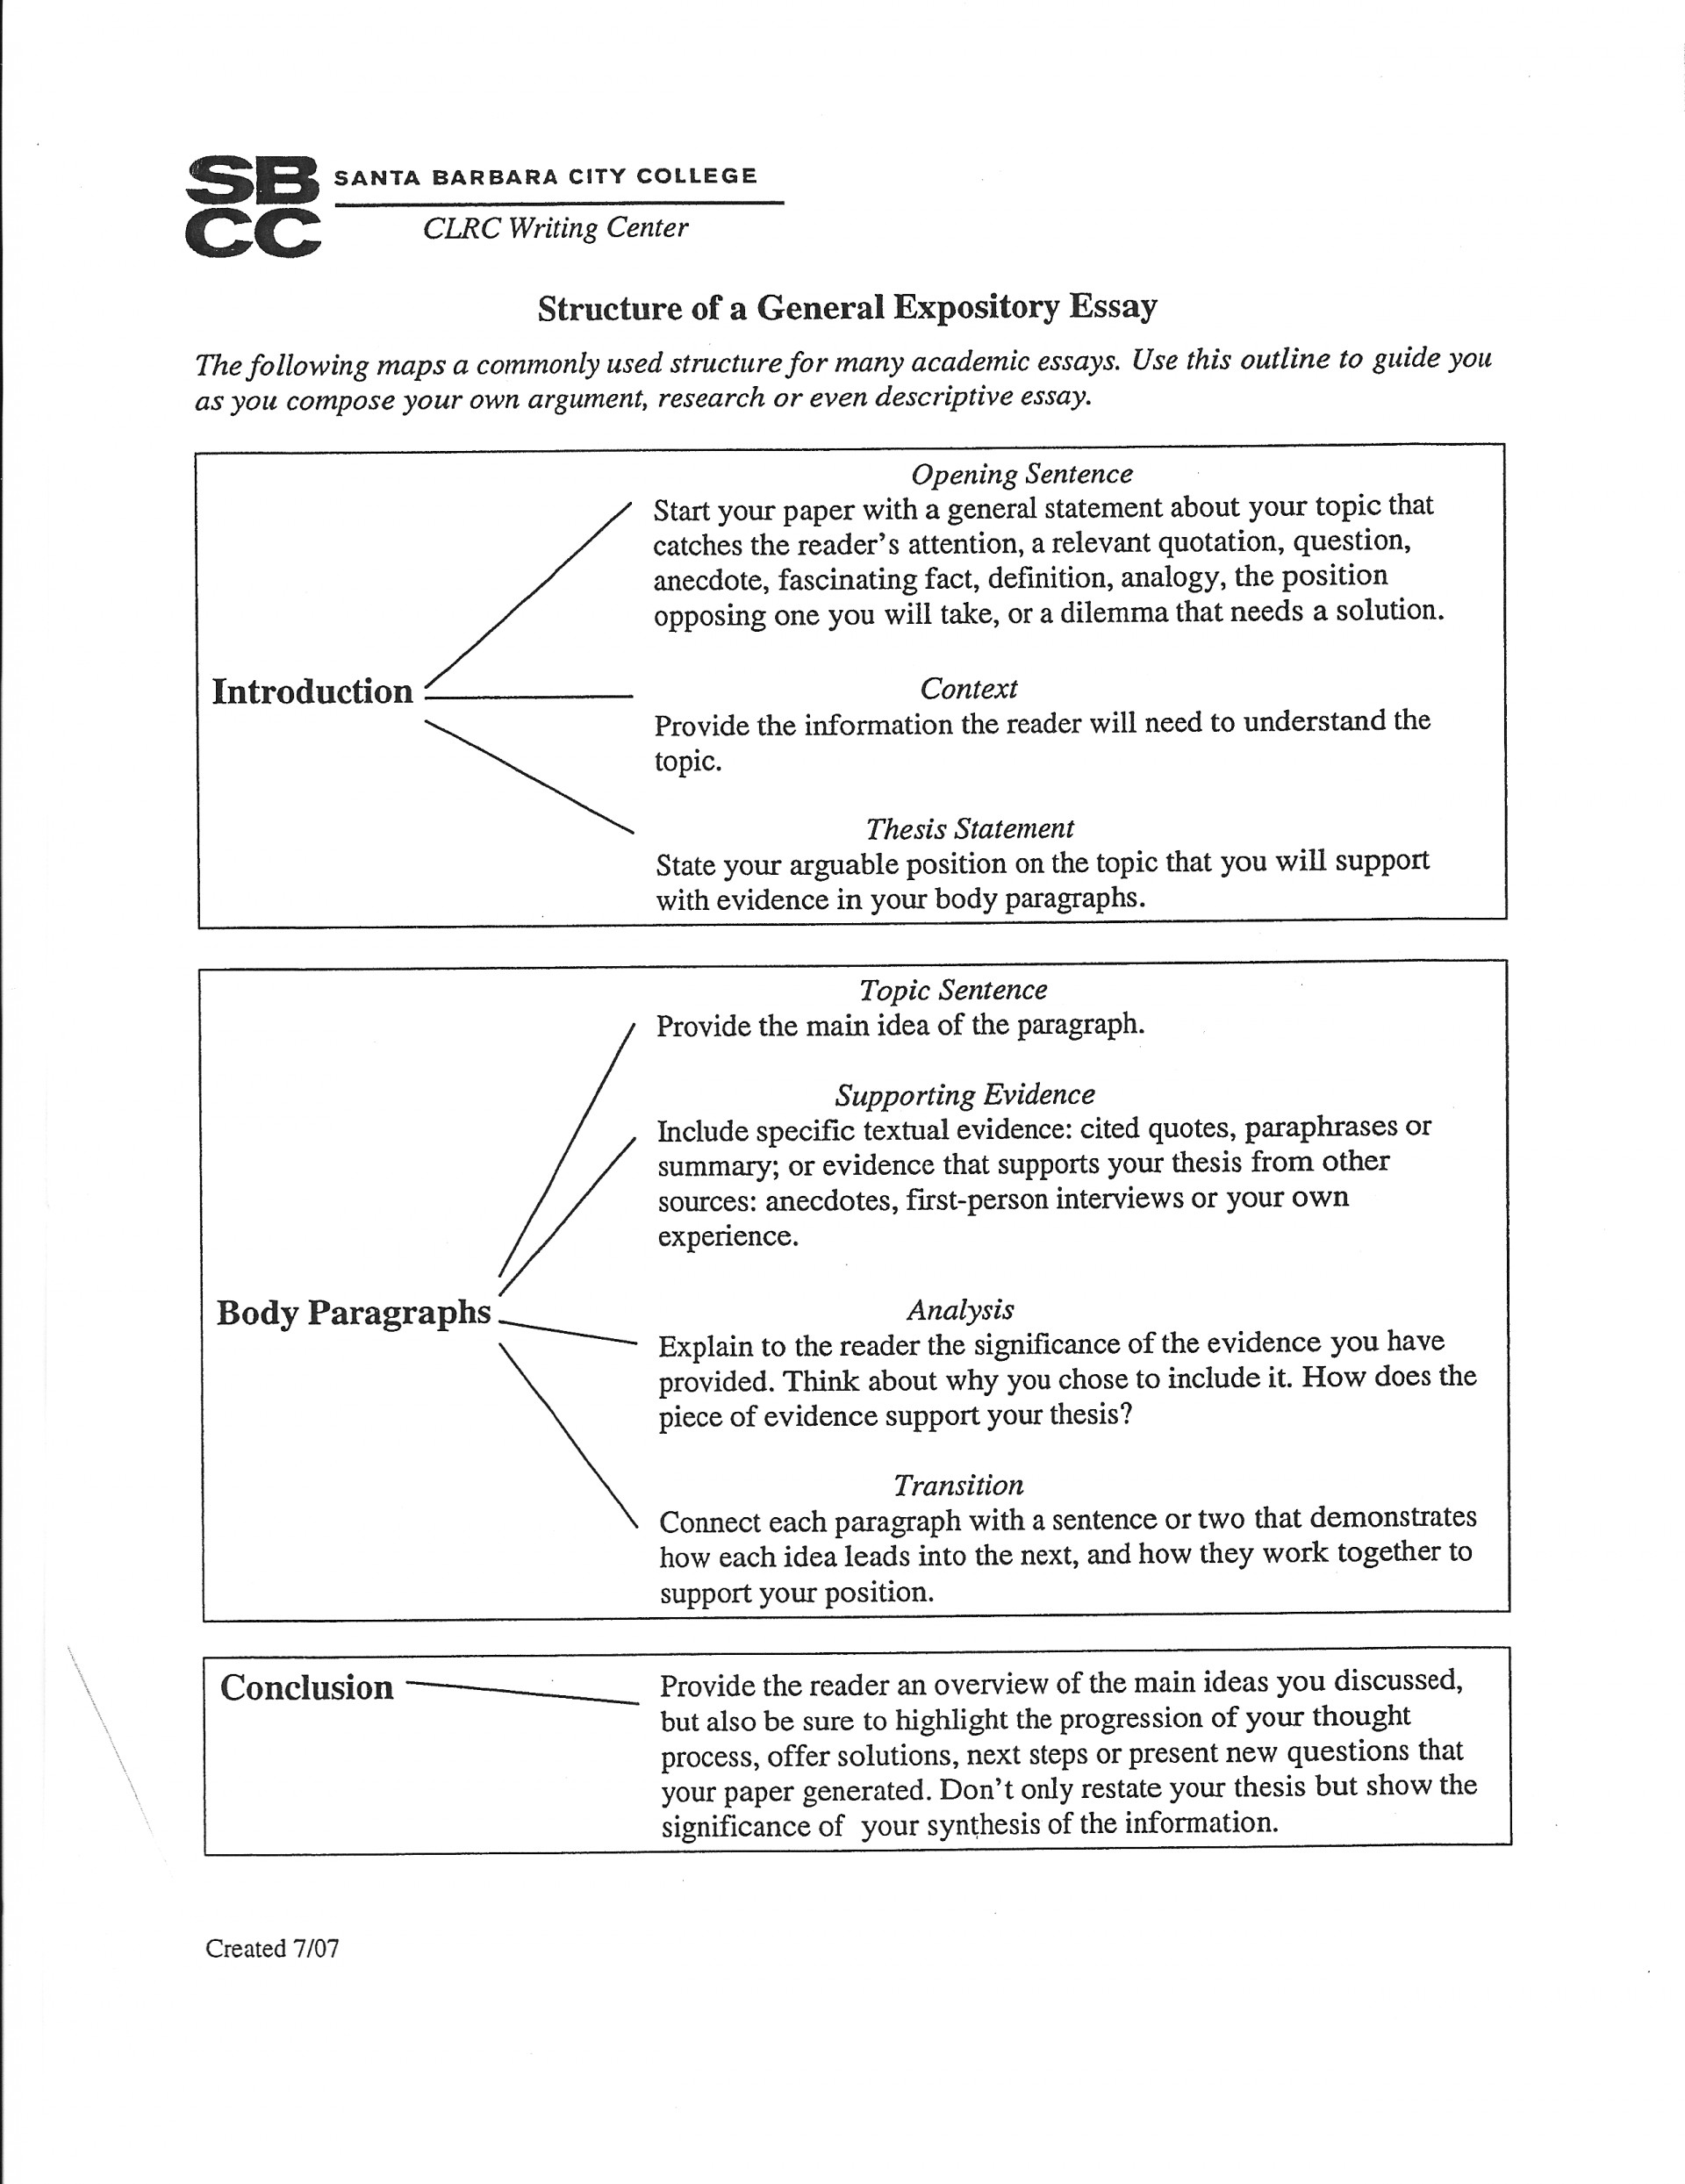 005 Essay Example An Outline For Informative Should Essays On Malaria To What Extent Structure Ielts Writing Thesis Exa Examples Remarkable After Creating A Student Brainly The Include Quizlet 1920